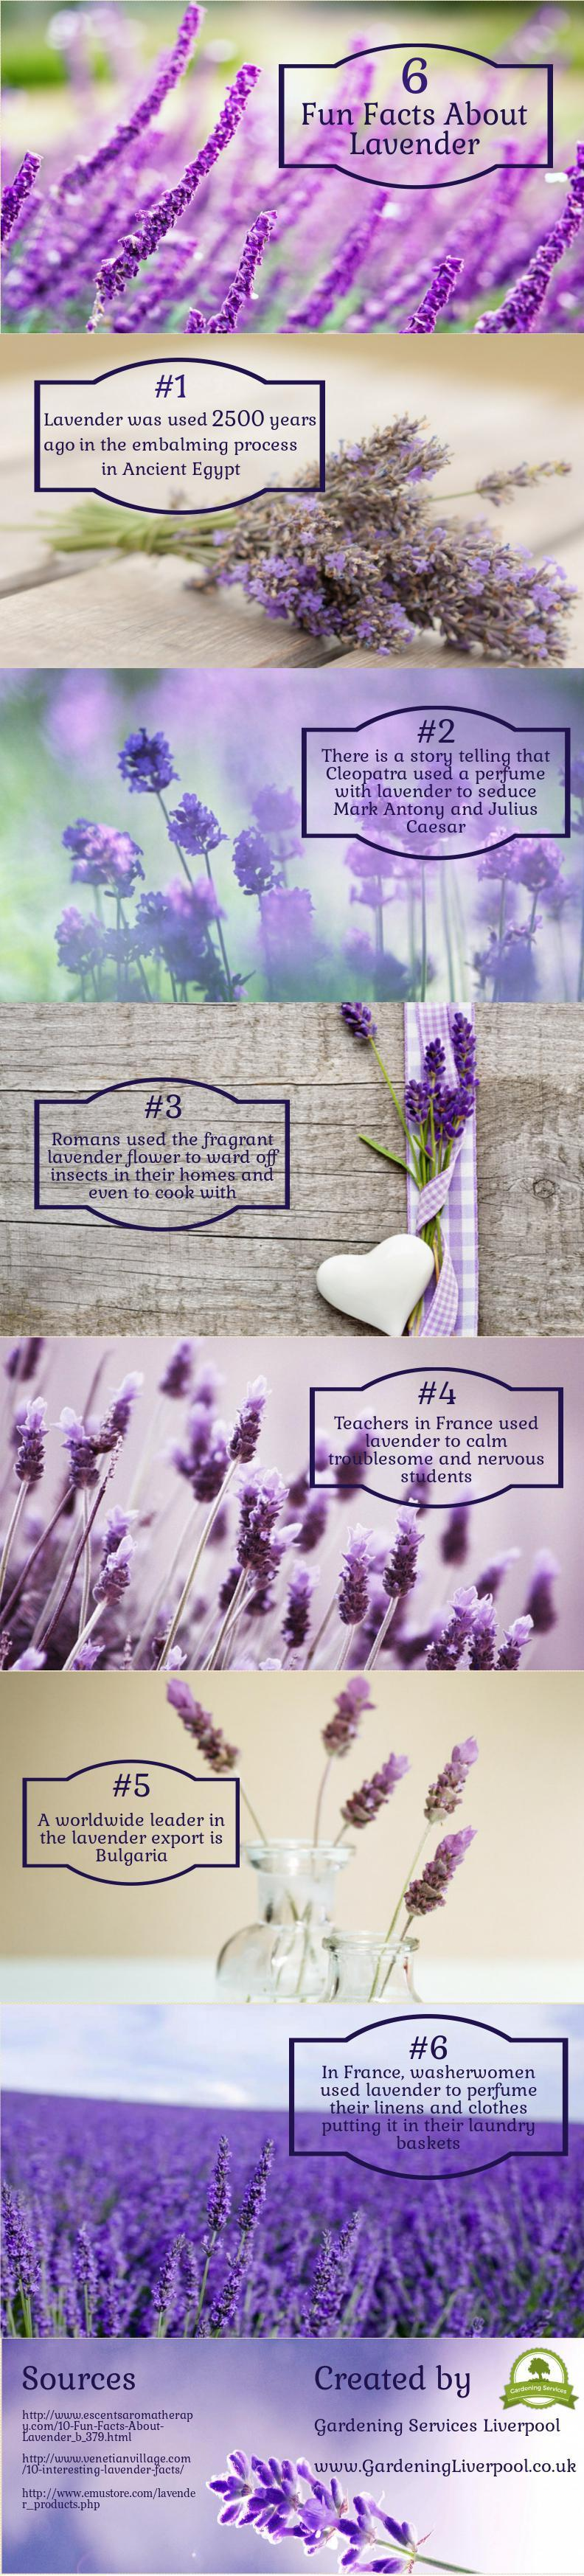 6 Fun Facts About Lavender